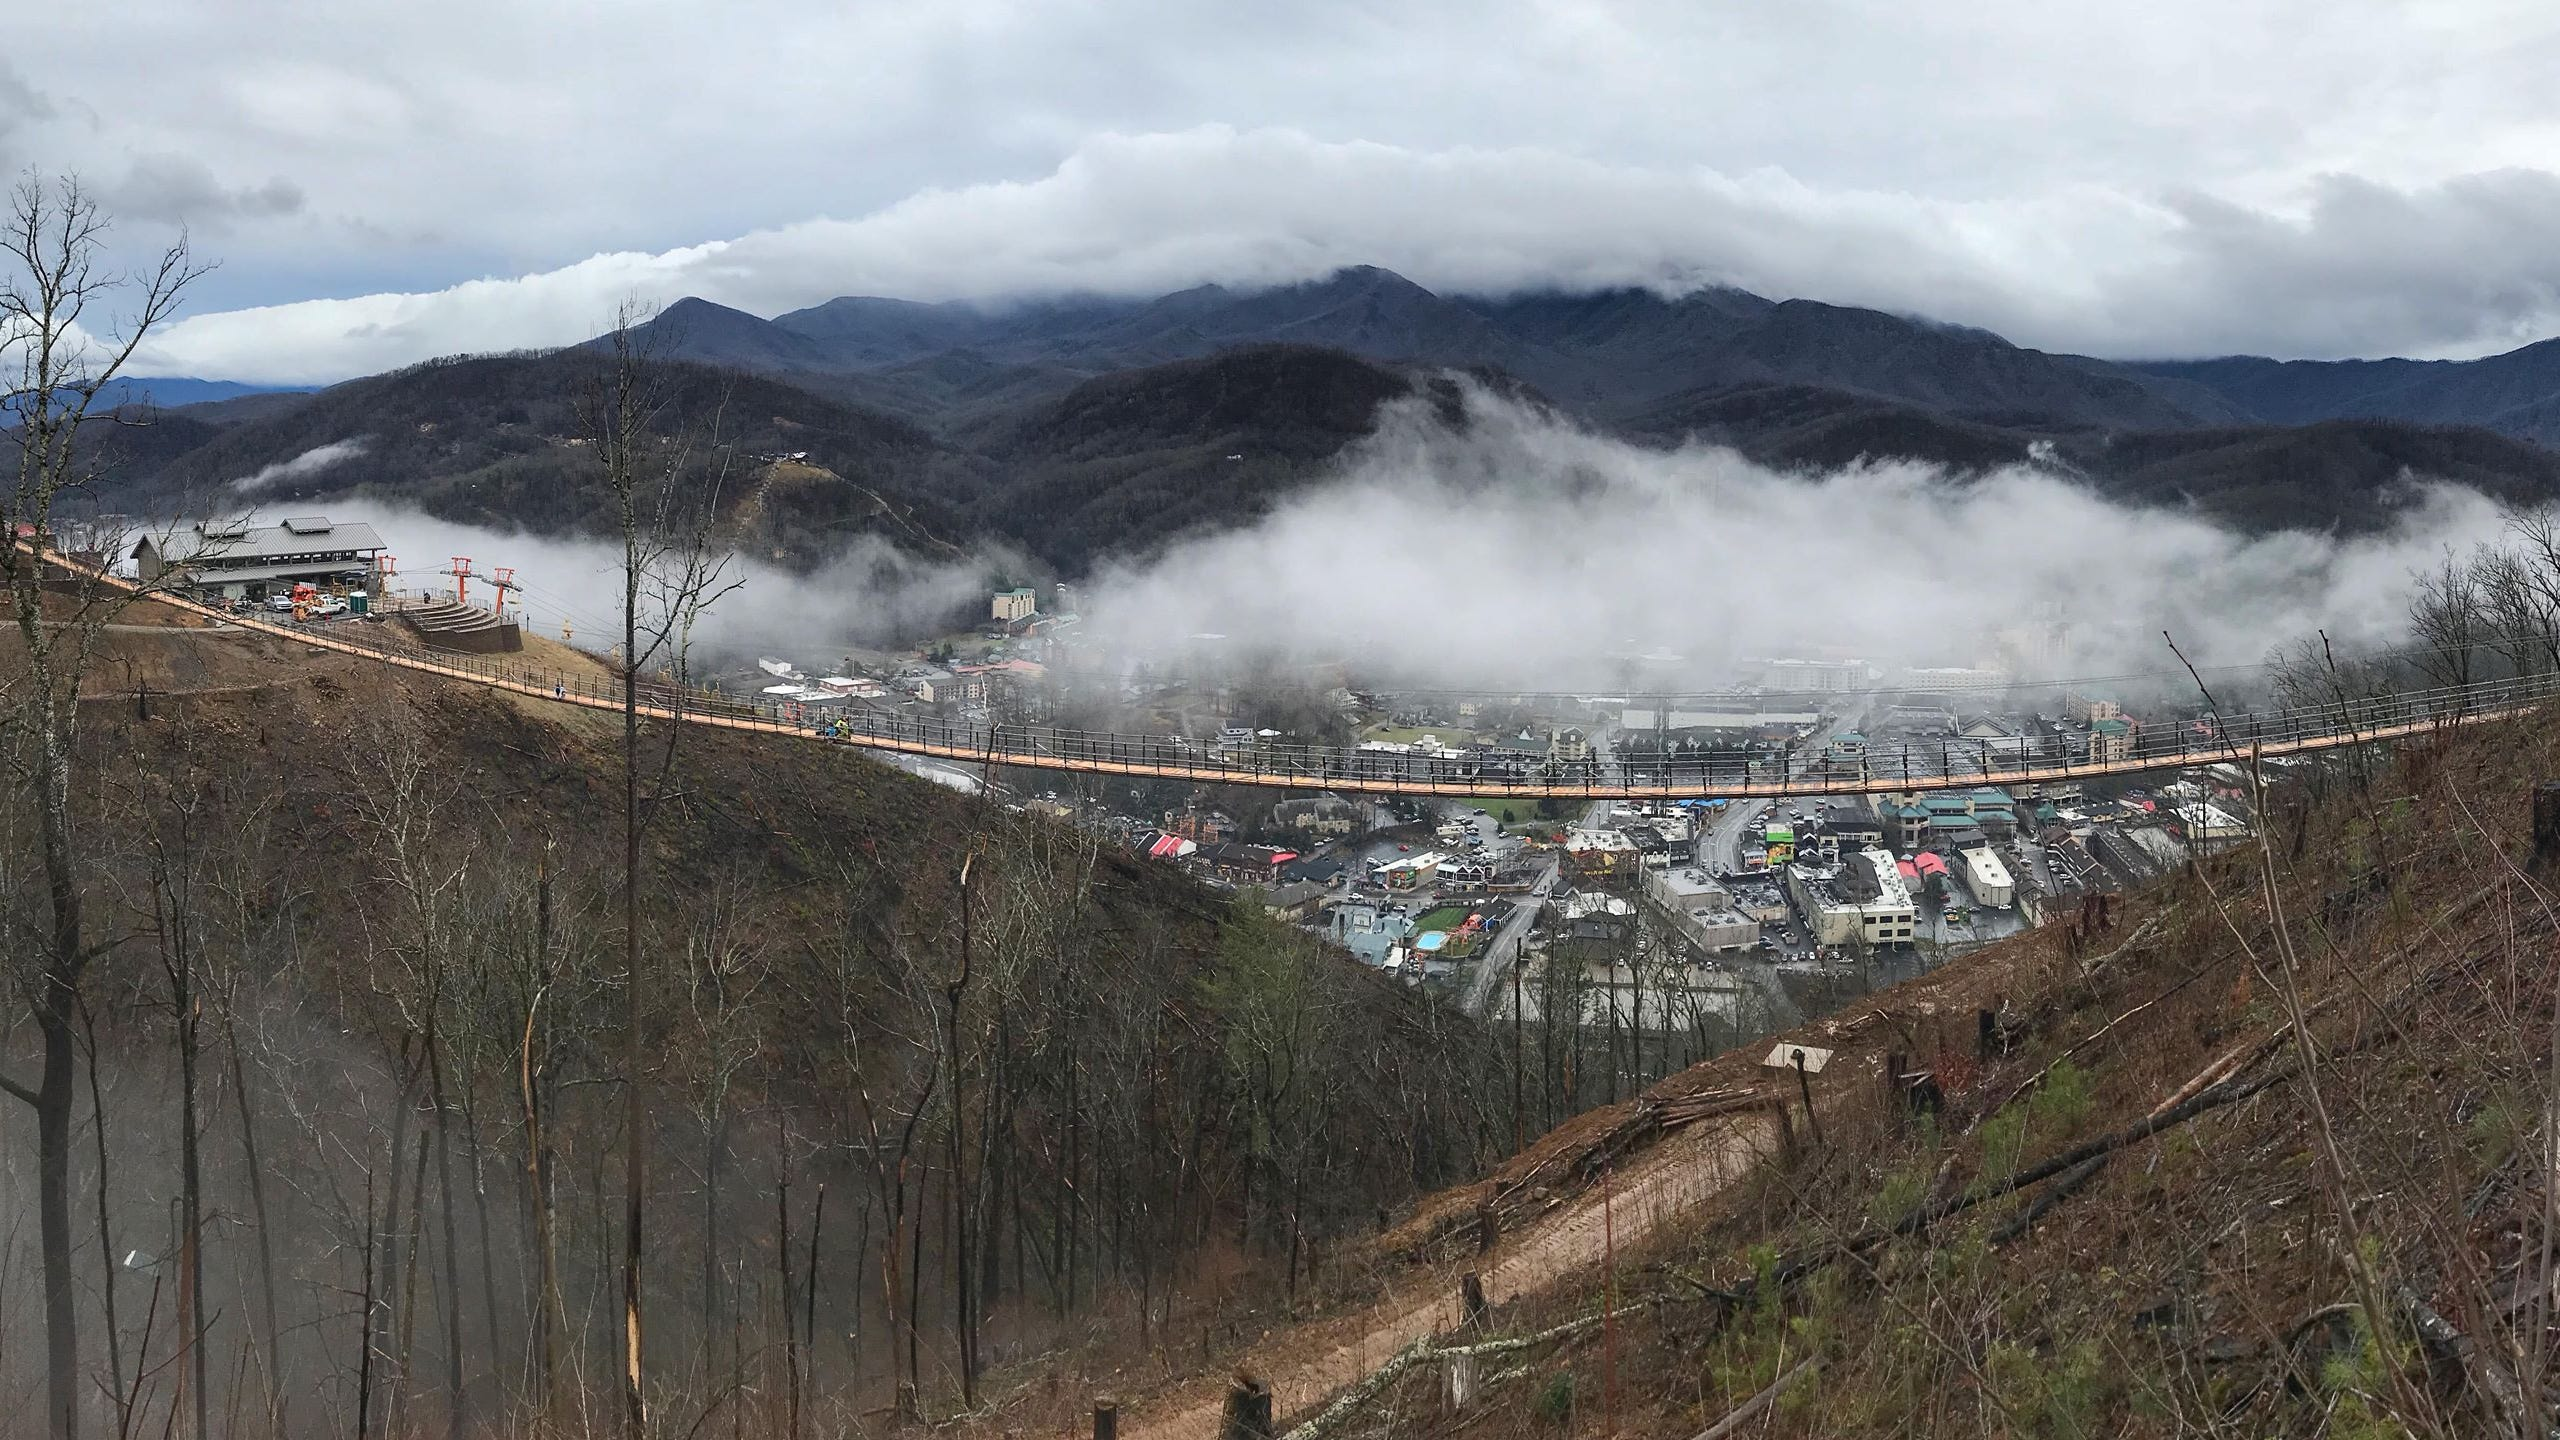 A new suspension bridge claiming to be the longest pedestrian bridge in North America is being built by Gatlinburg SkyLift.